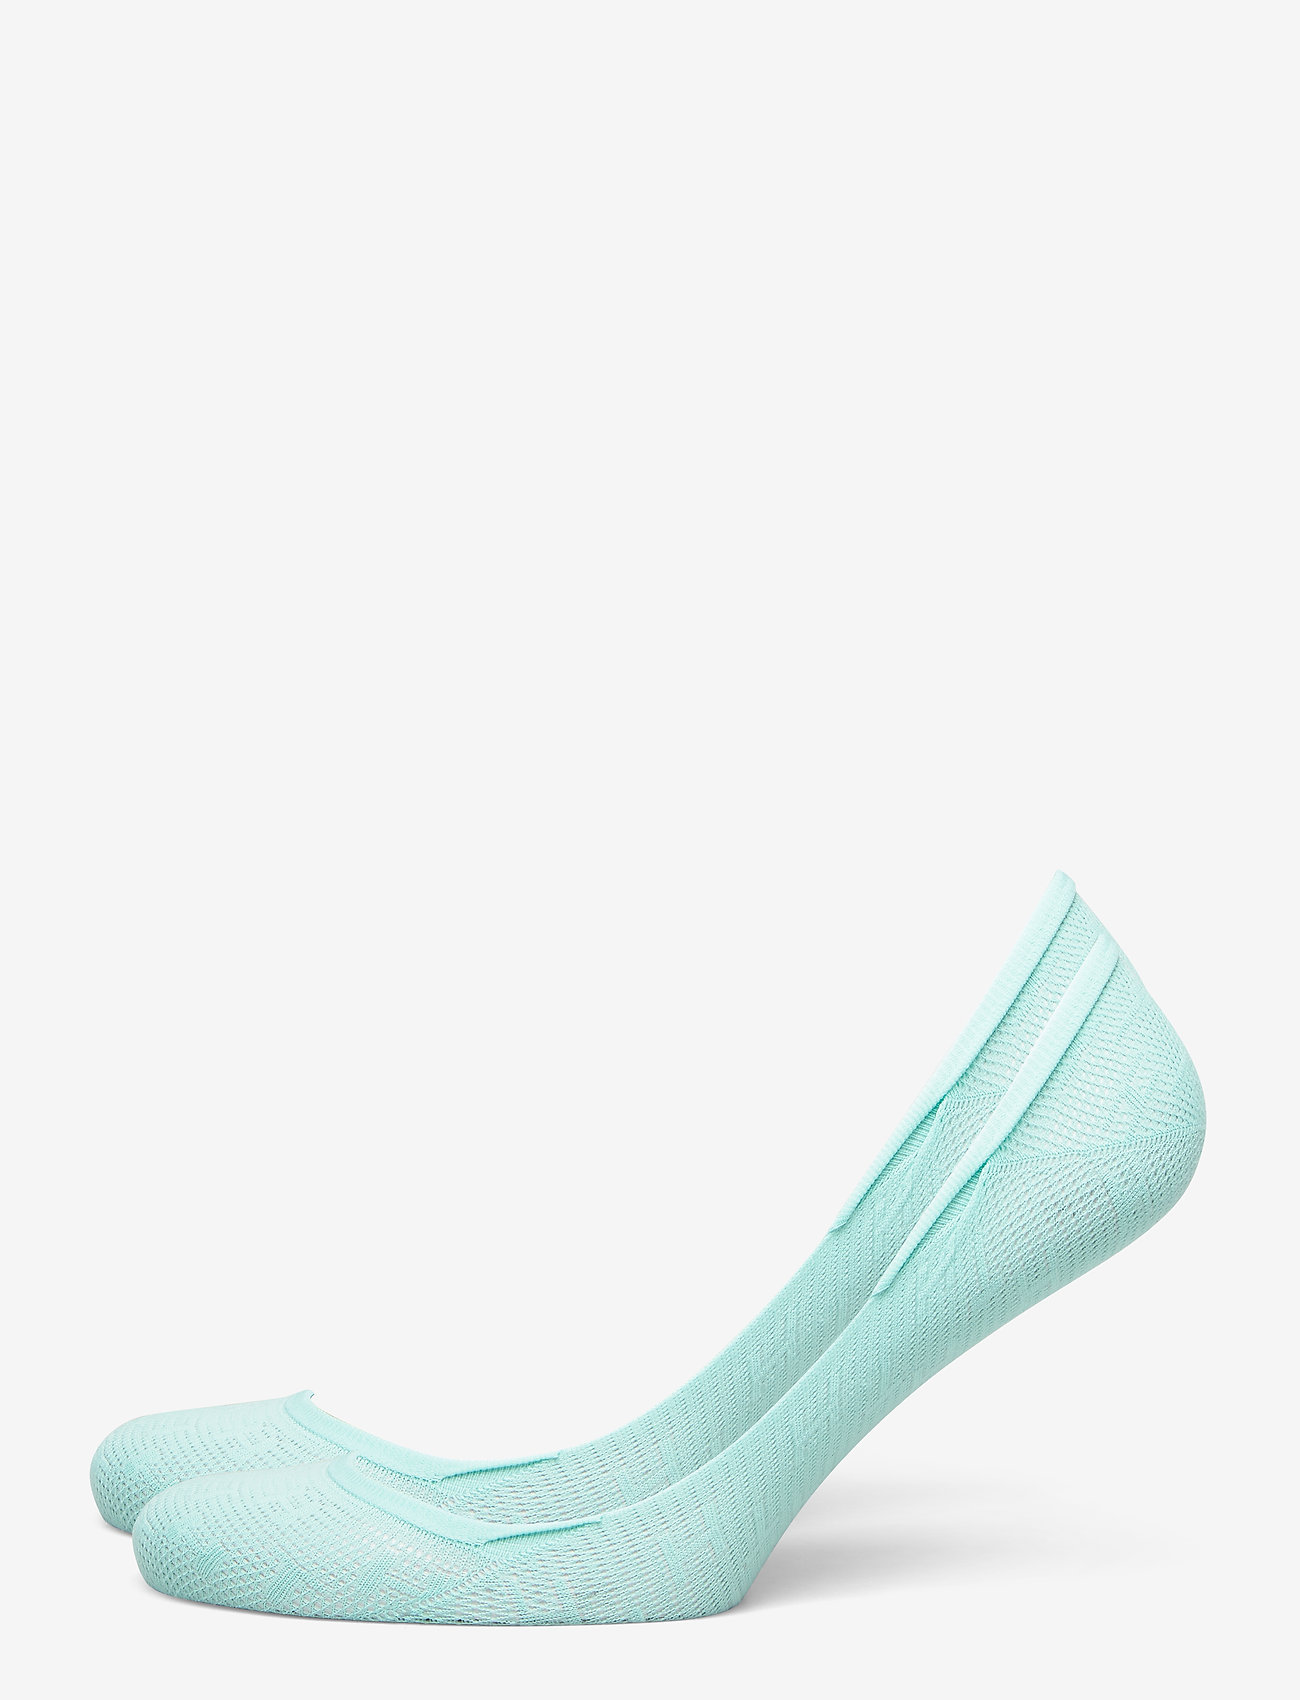 Tommy Hilfiger - TH WOMEN FOOTIE 2P TH BURN OUT - footies - mint leaf - 0